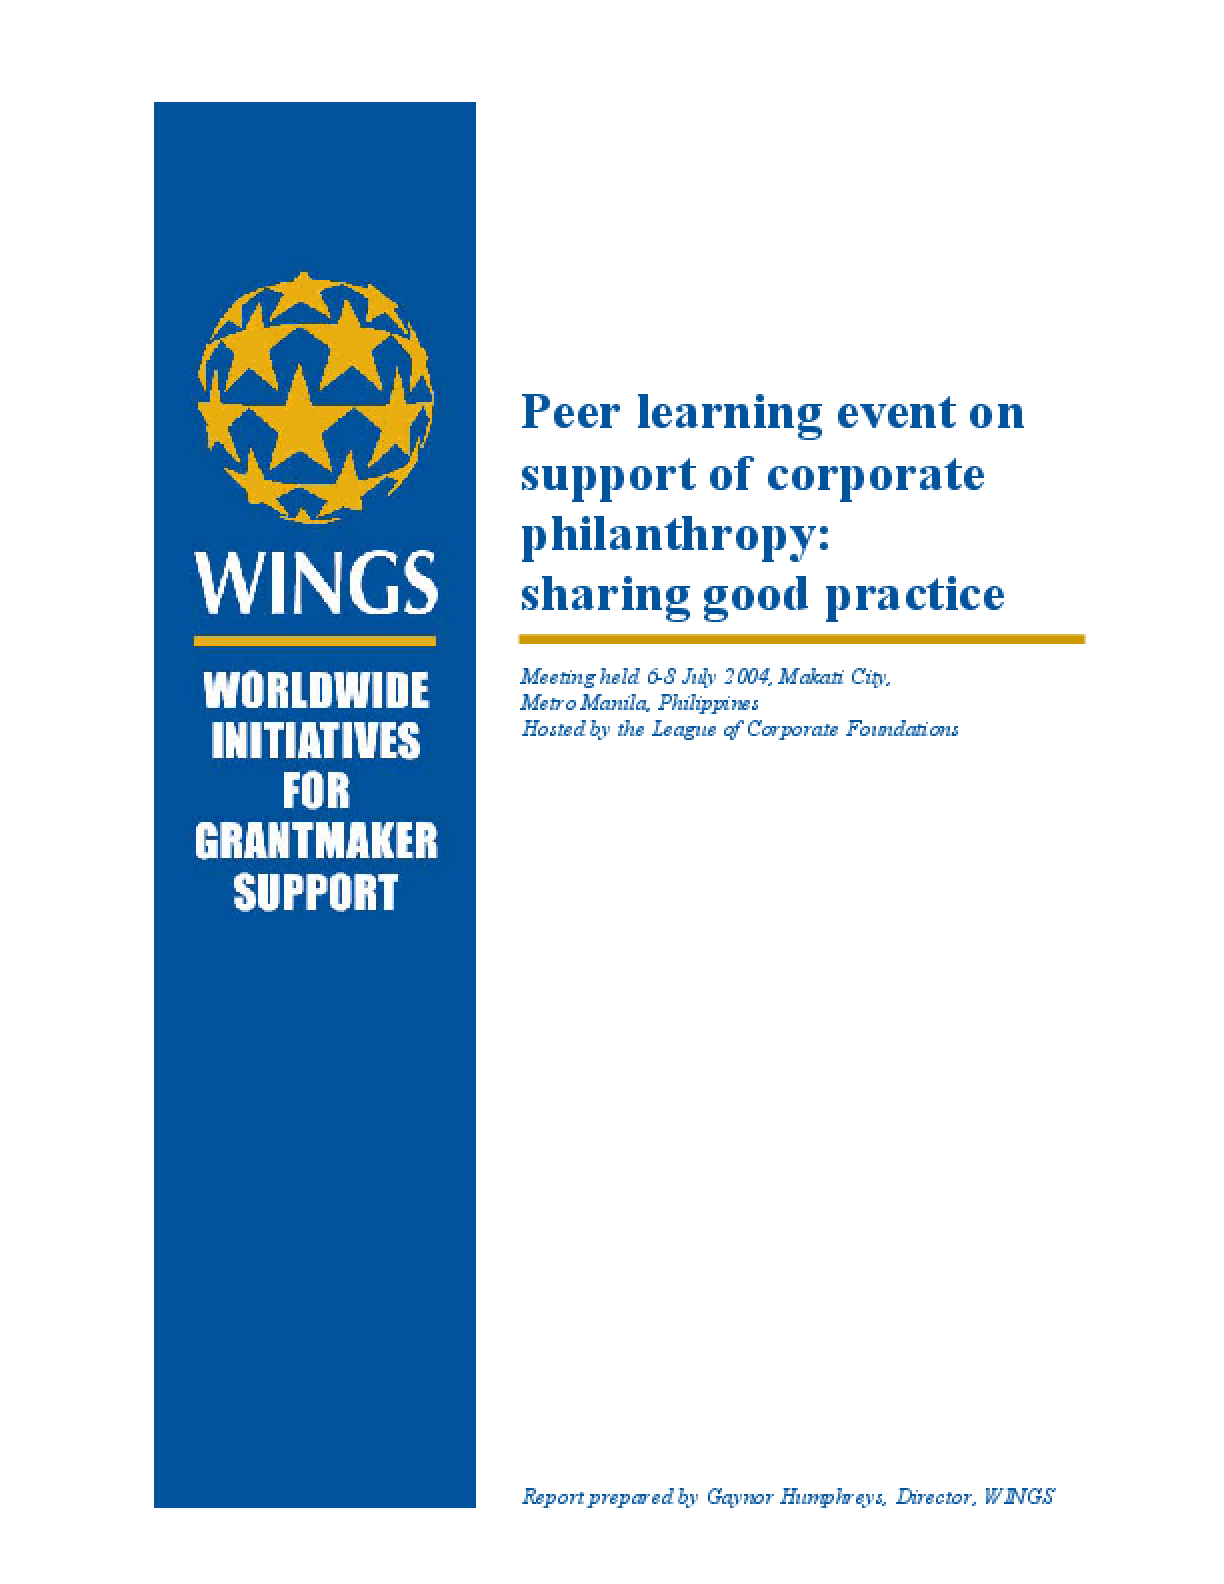 Peer Learning Event on Support of Corporate Philanthropy: Sharing Good Practice